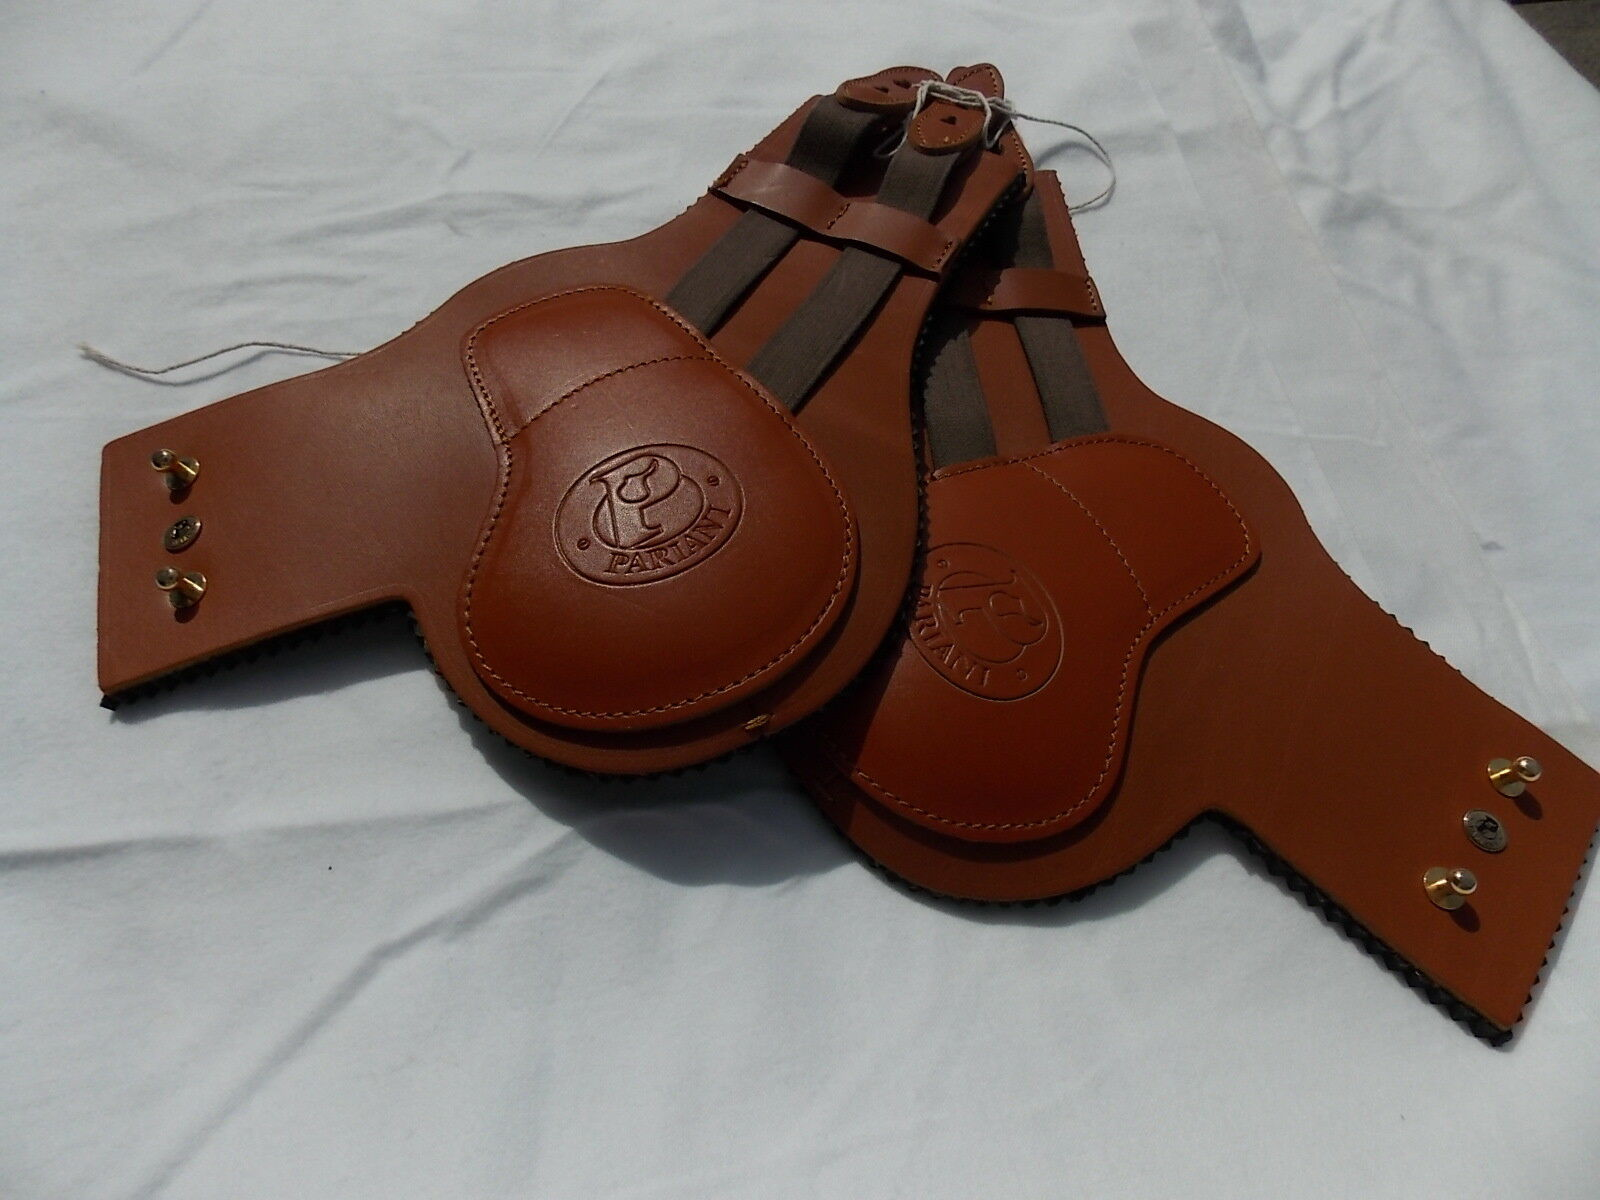 NEW  PARIANI COB REAR ANKLE JUMP BOOTS NEOPRENE LEATHER  fashion